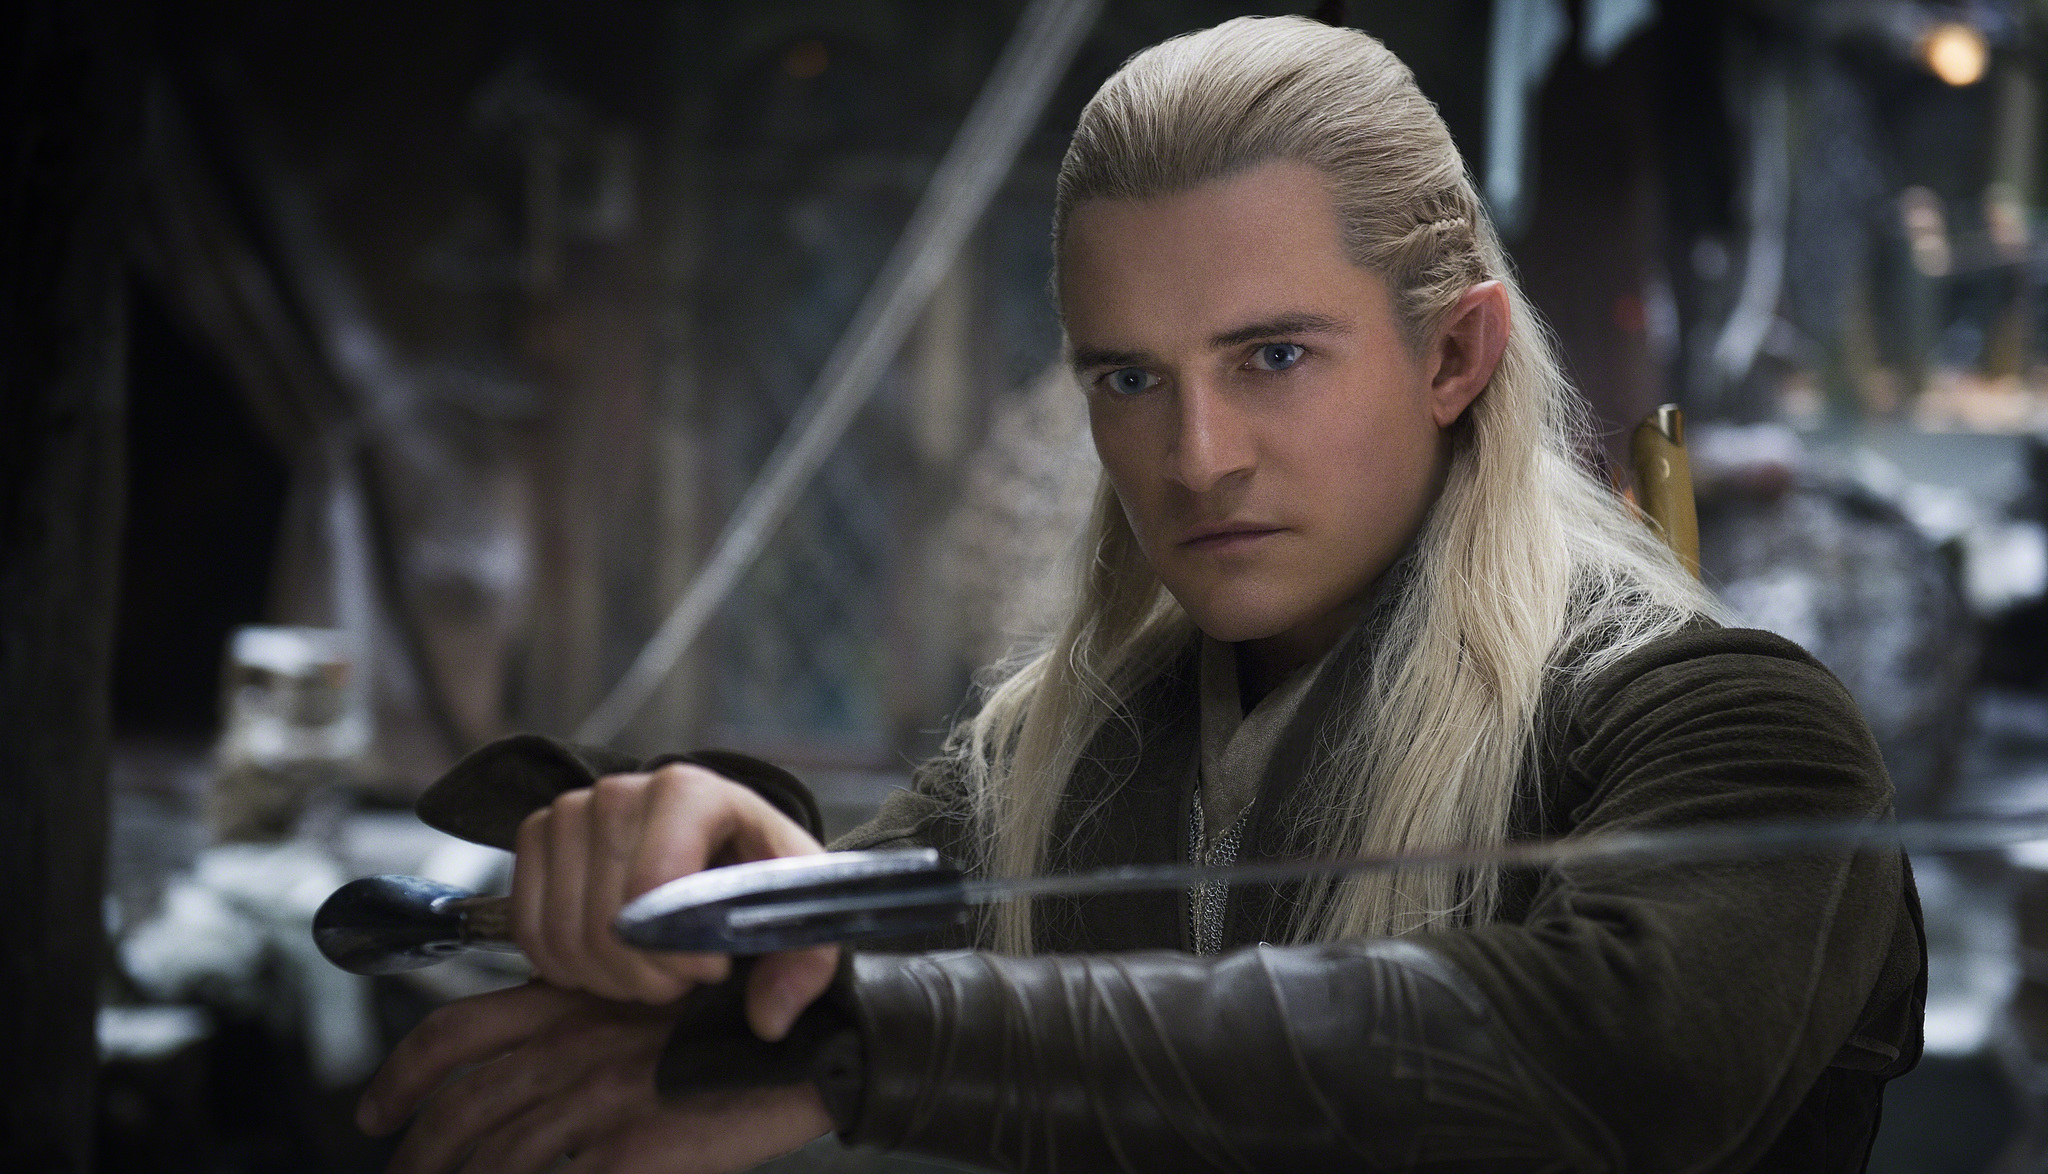 On The Hobbit: The Desolation of Smaug and weaknesses in ... Orlando Bloom Imdb